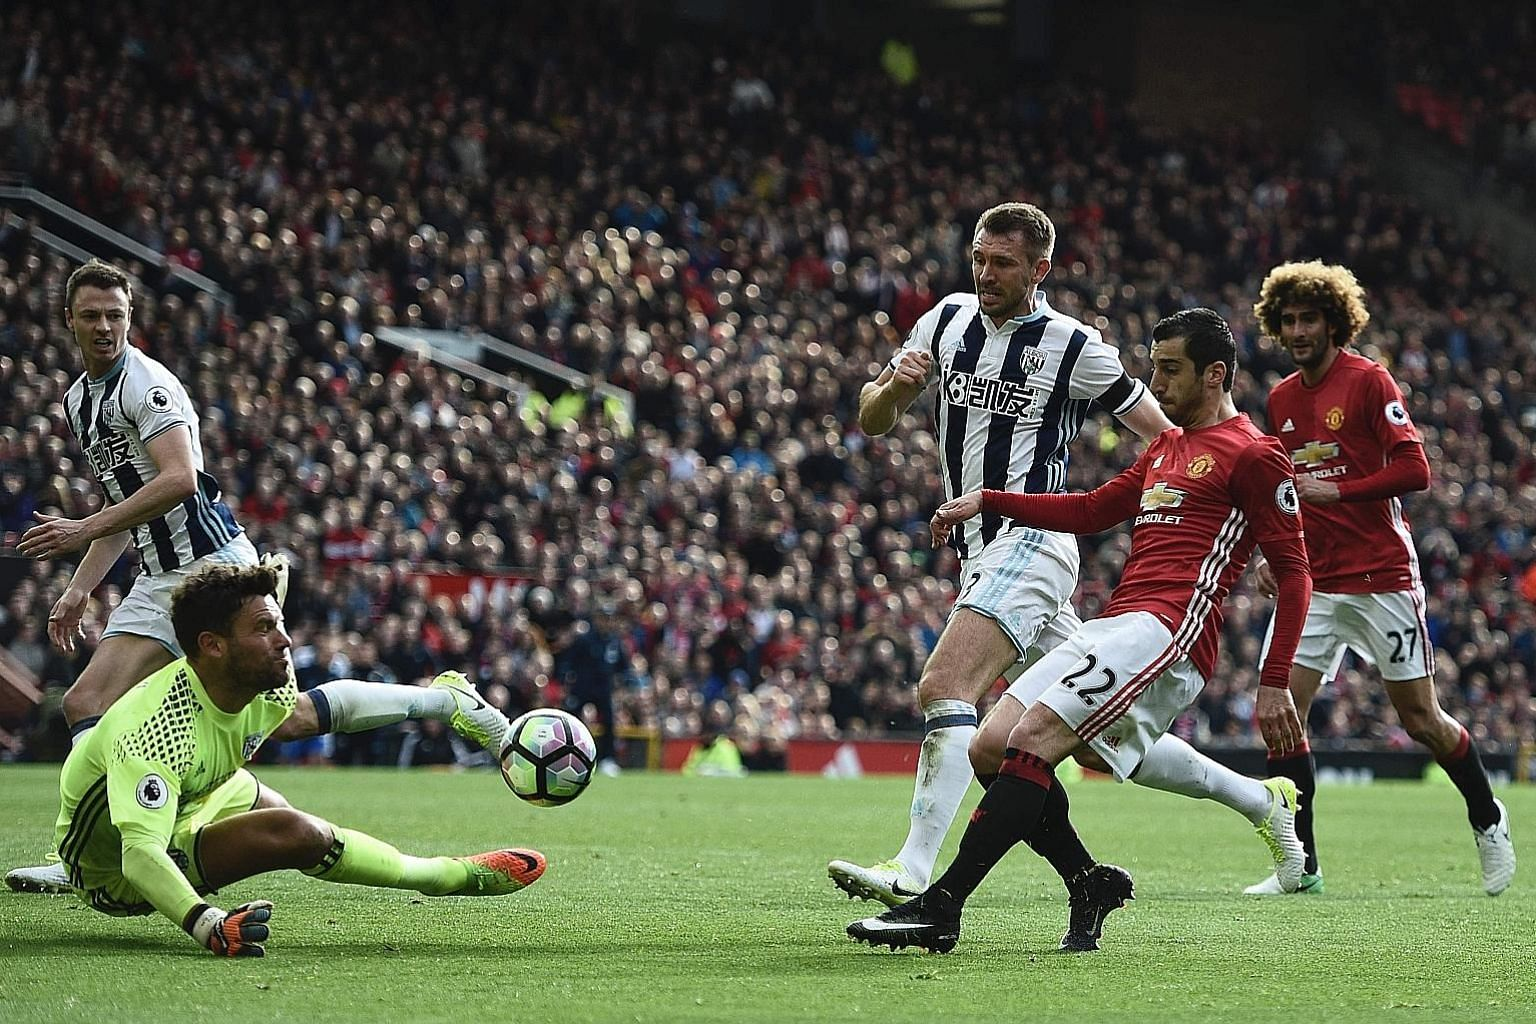 An attempt by United midfielder Henrikh Mkhitaryan being saved by West Brom goalkeeper Ben Foster during their game at Old Trafford. Manager Jose Mourinho has lamented the eight draws and one loss at home that have left them outside the top four spot